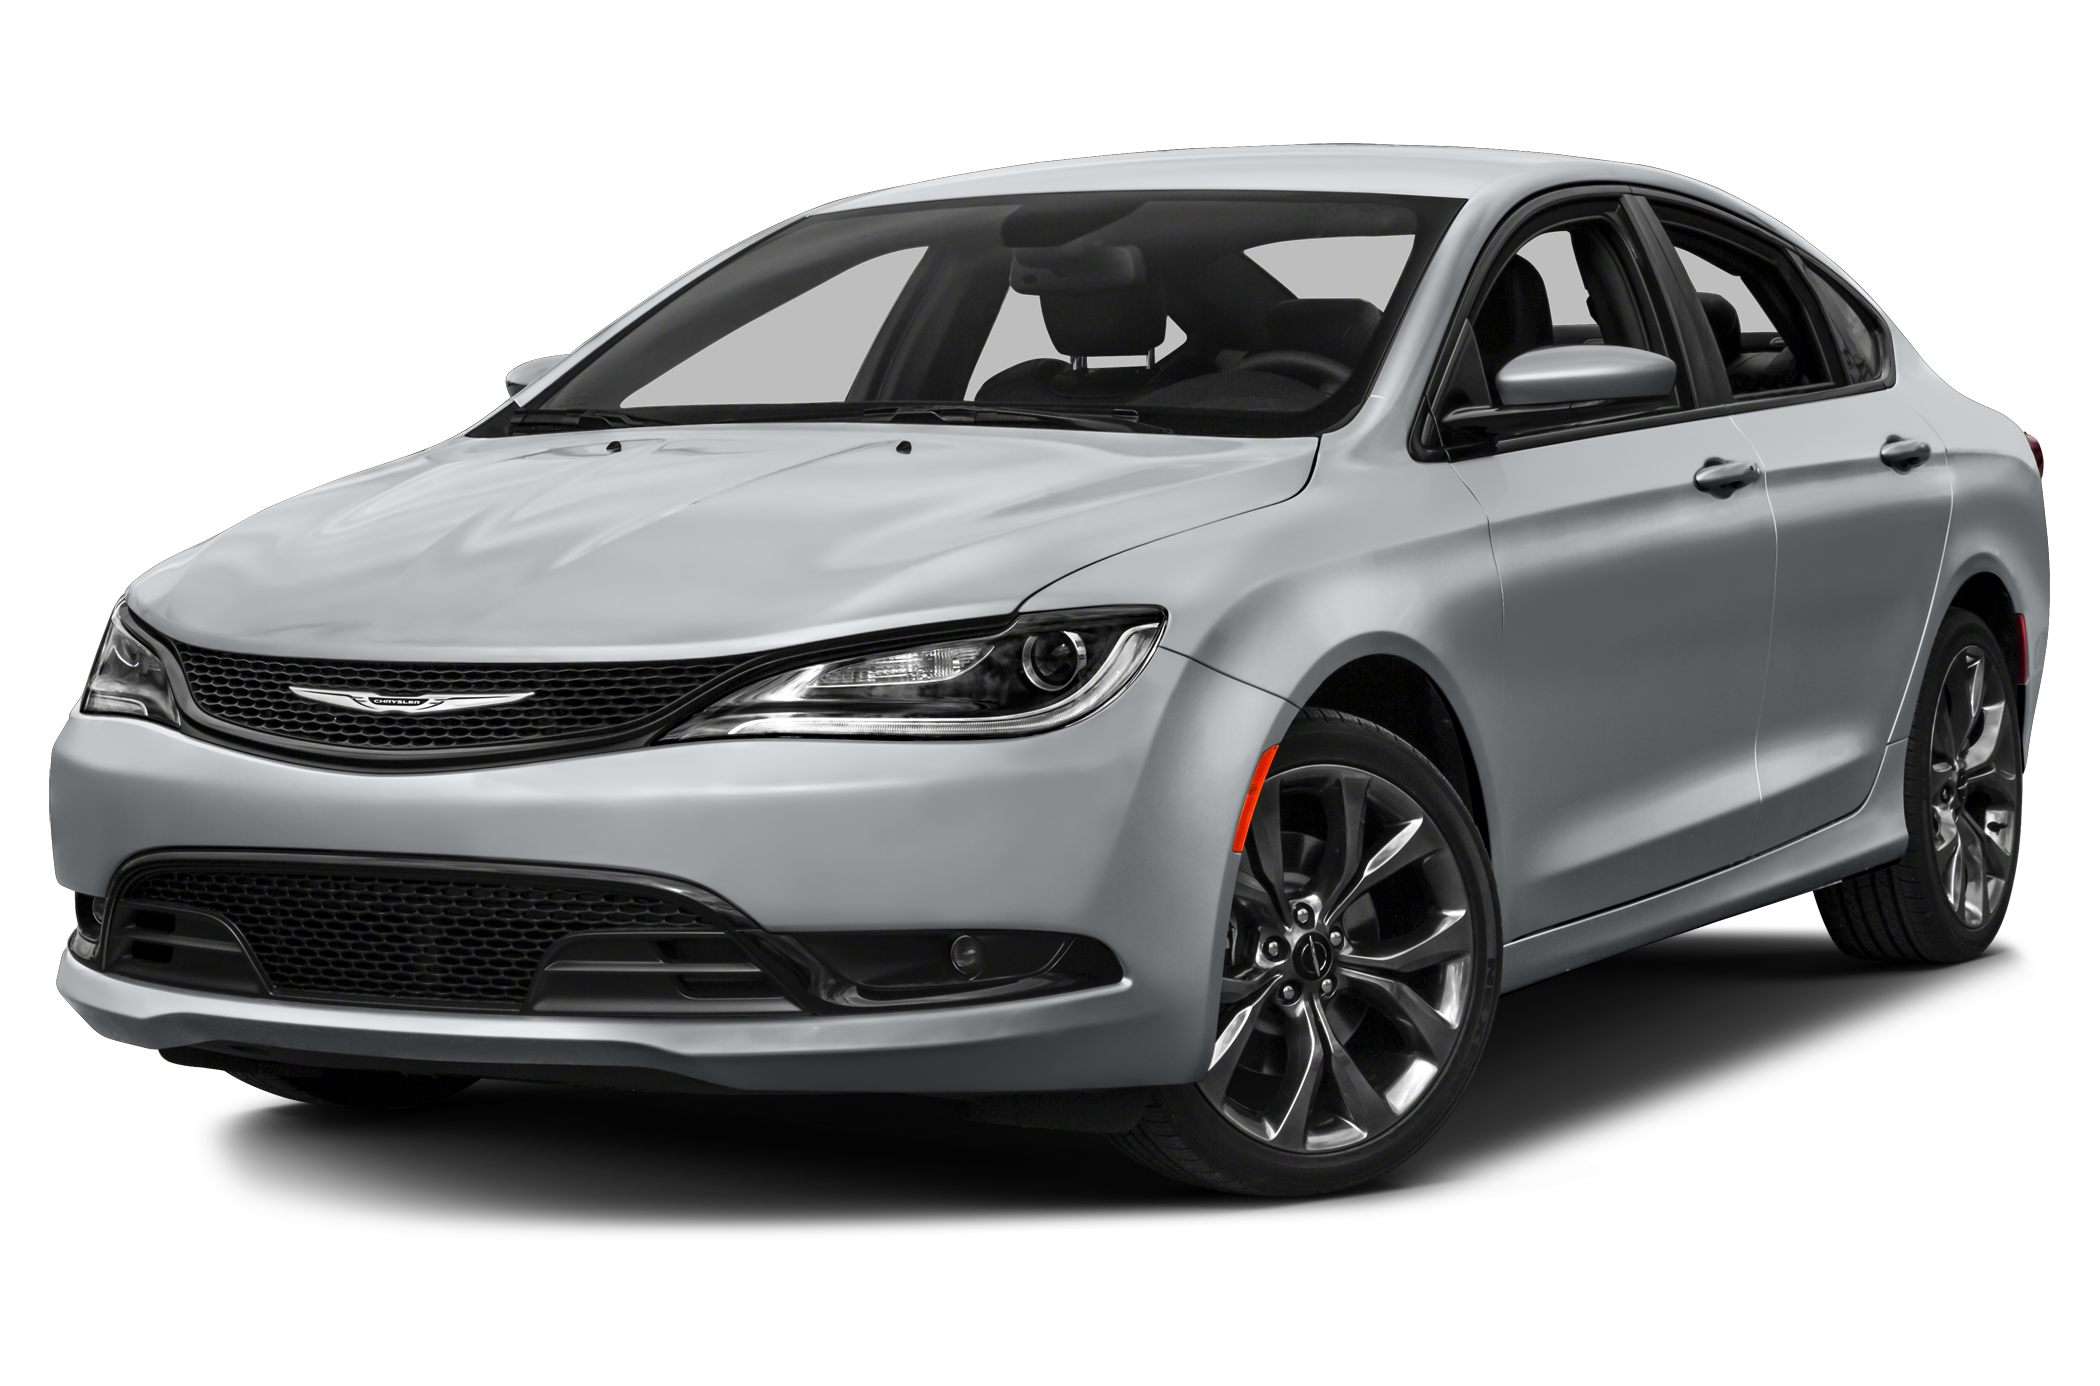 2015 Chrysler 200 S Sedan for sale in Spokane for $28,569 with 0 miles